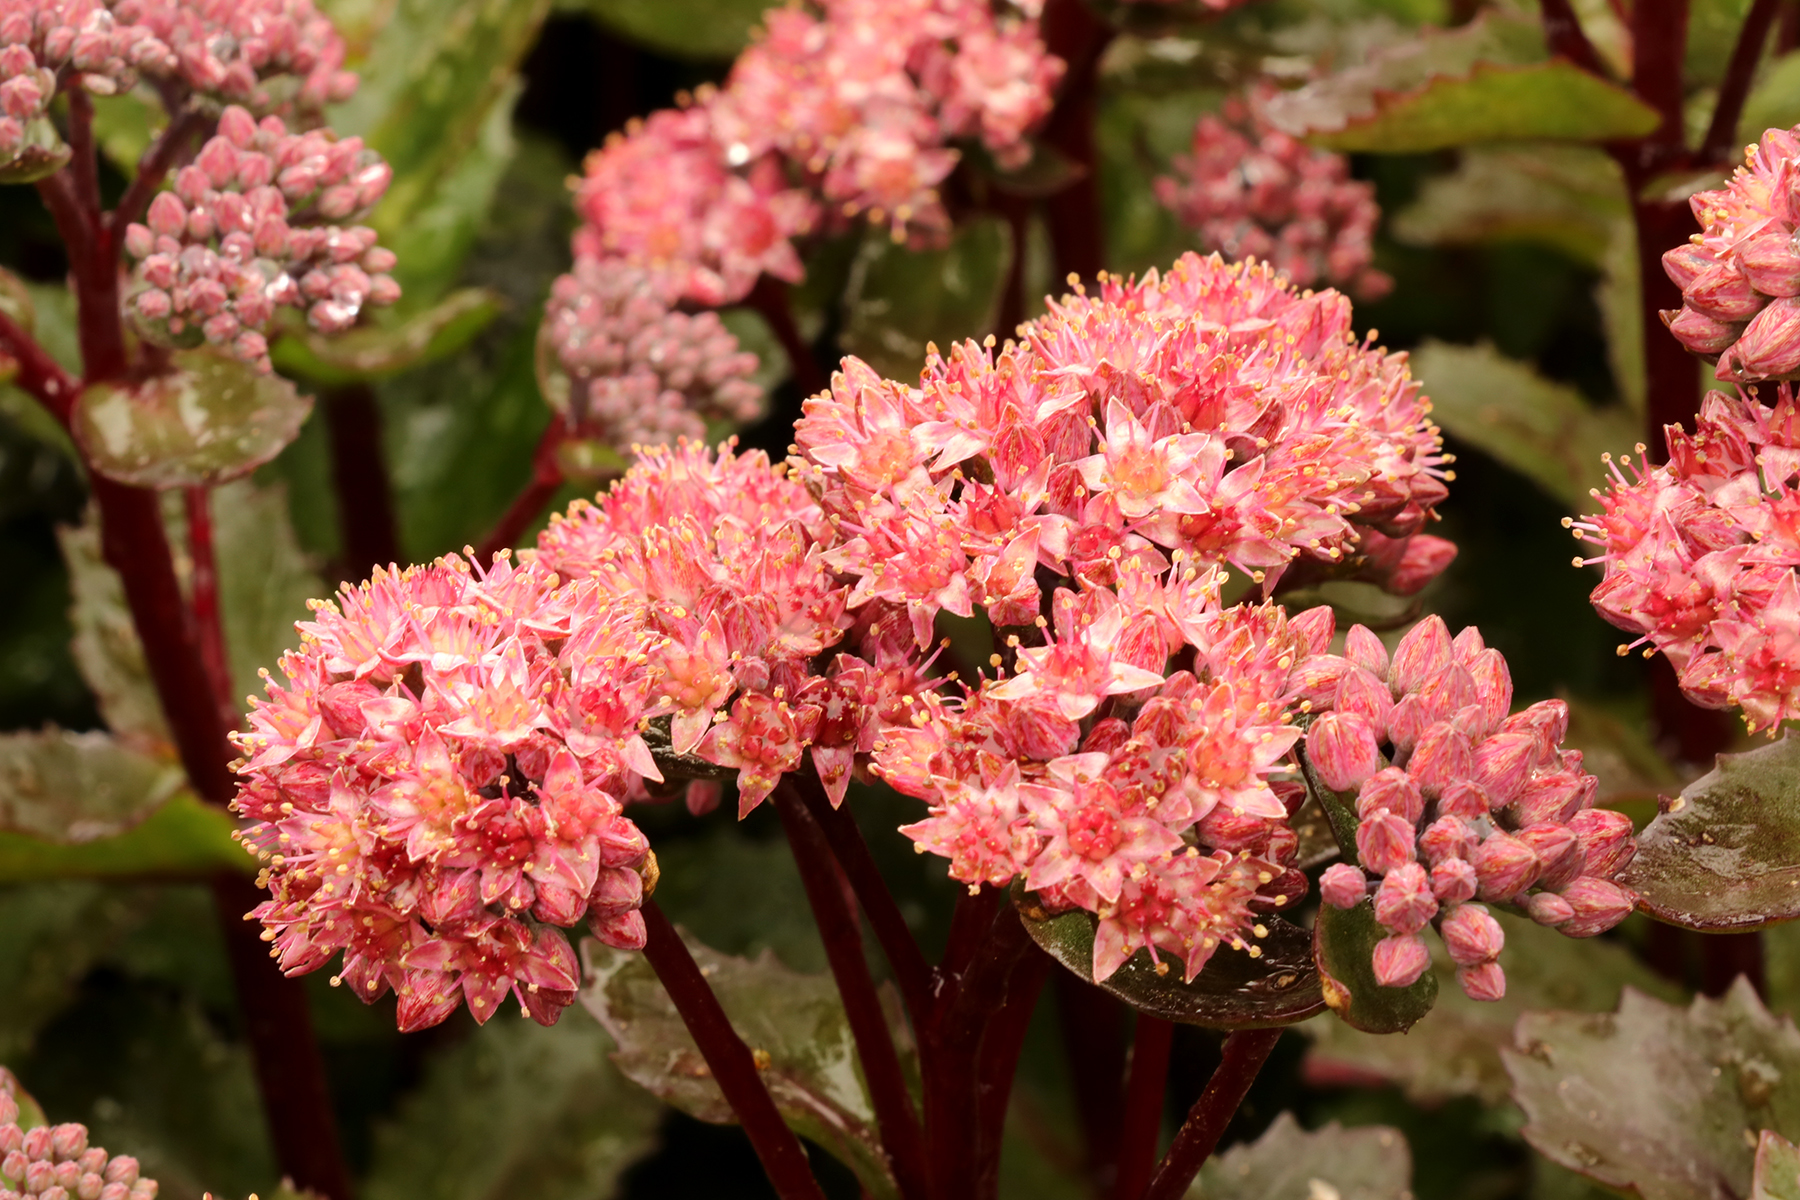 Sedum-Double-Martini-8.jpg